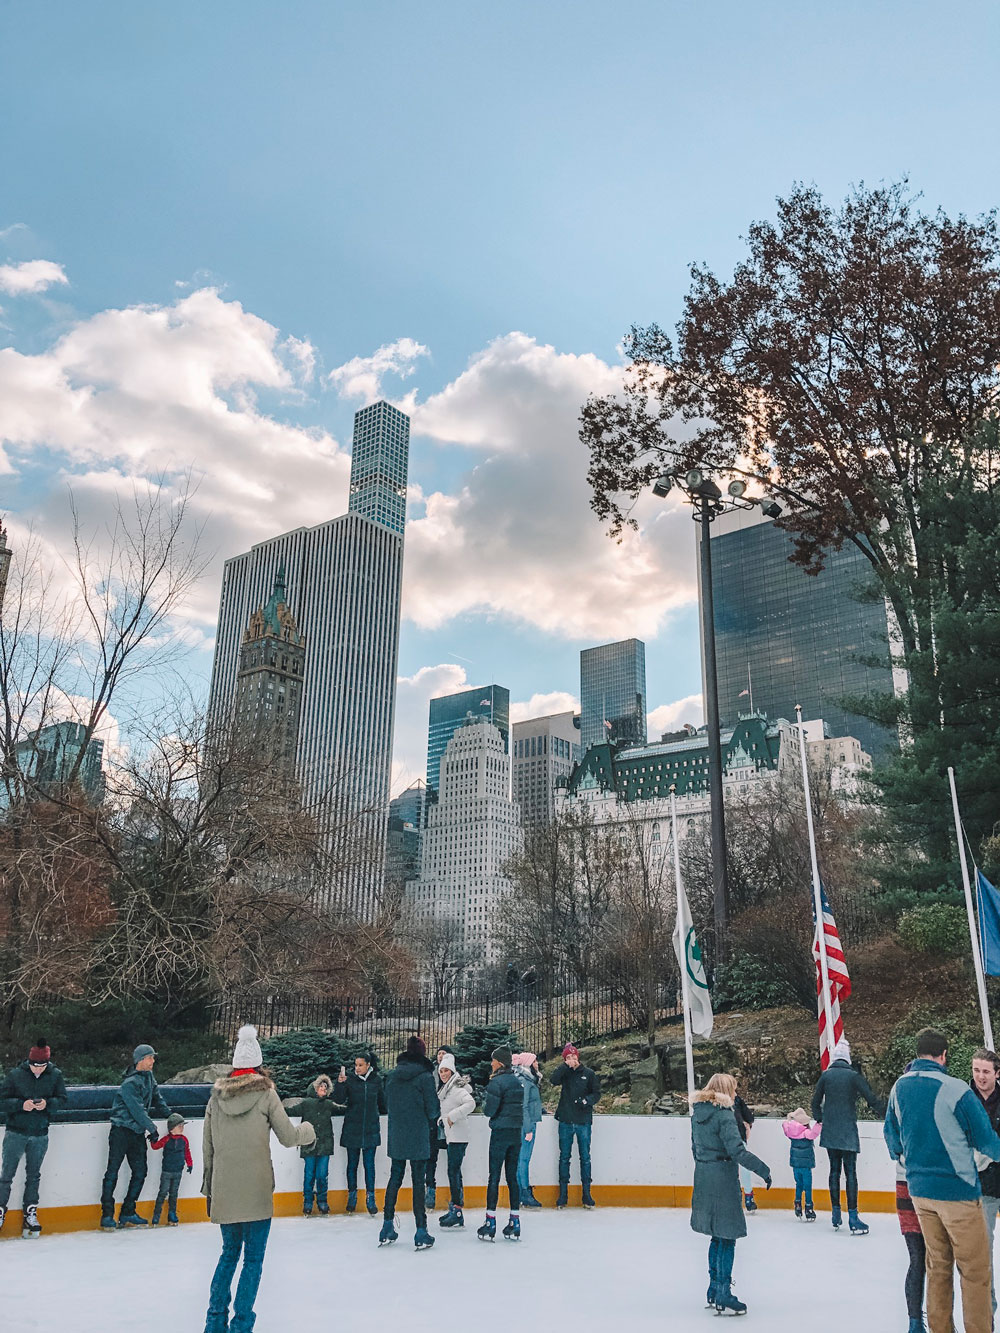 Most Instagrammable Spots in NYC: Wollman Ice Rink